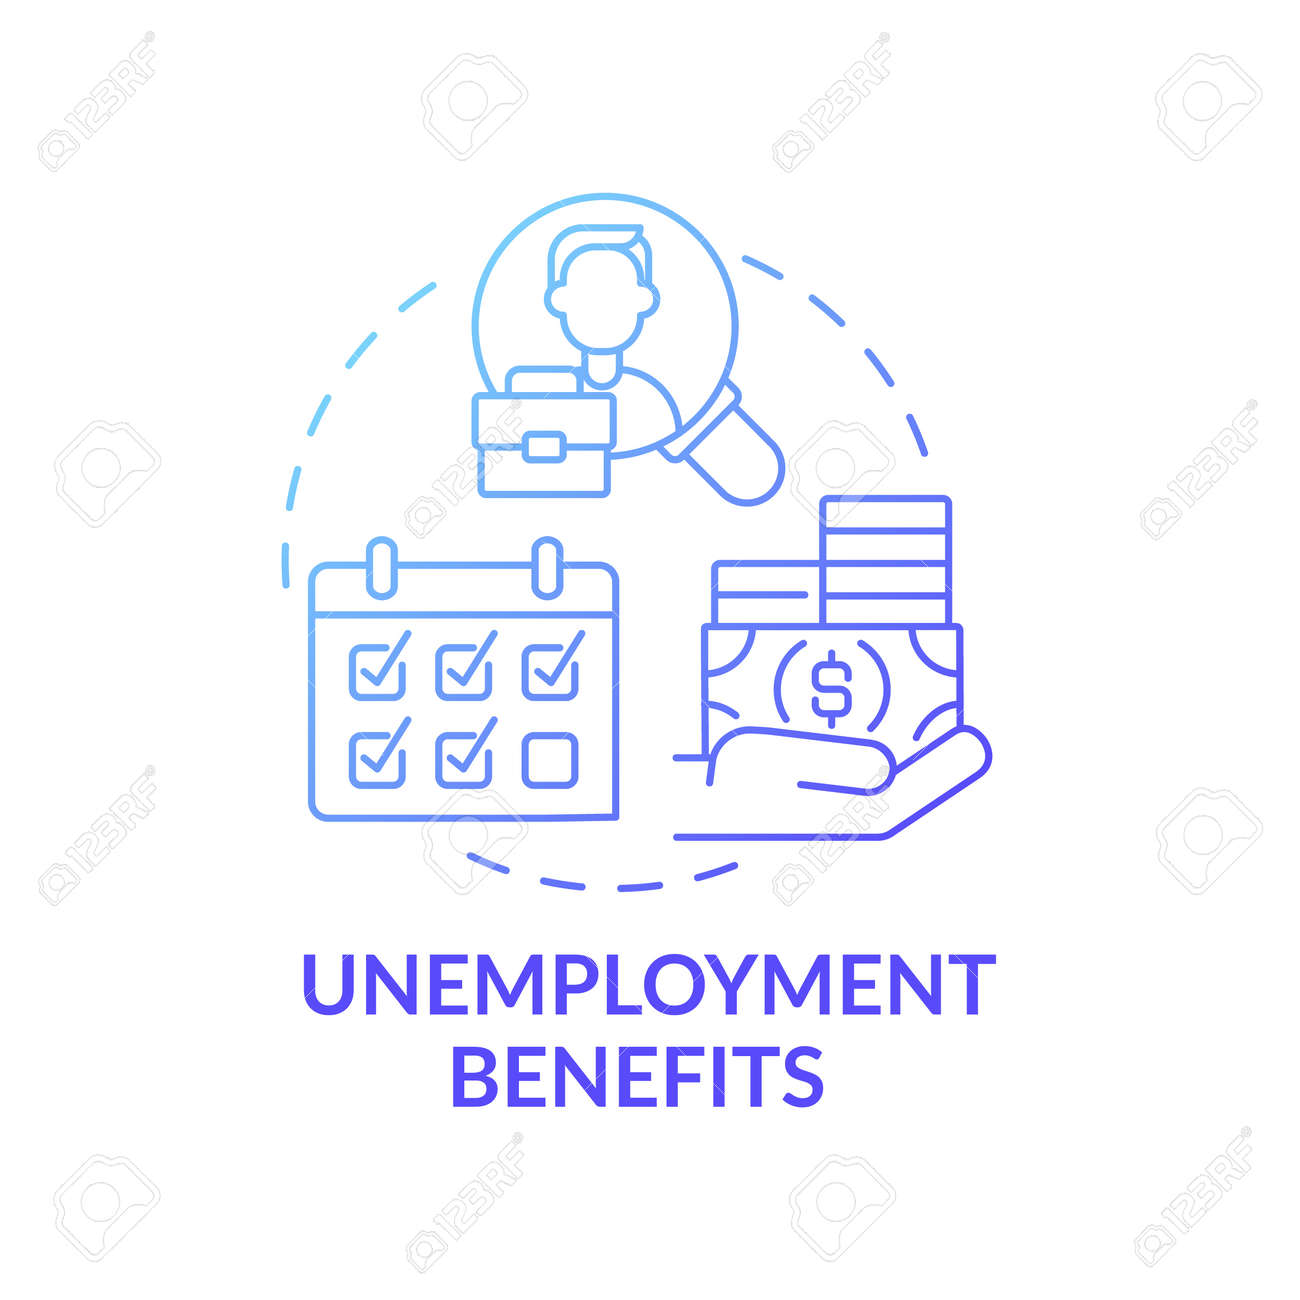 Unemployment benefits concept icon. Lose job and temporary income idea thin line illustration. Getting help pay expenses. Unemployed people. Vector isolated outline RGB color drawing - 166105609